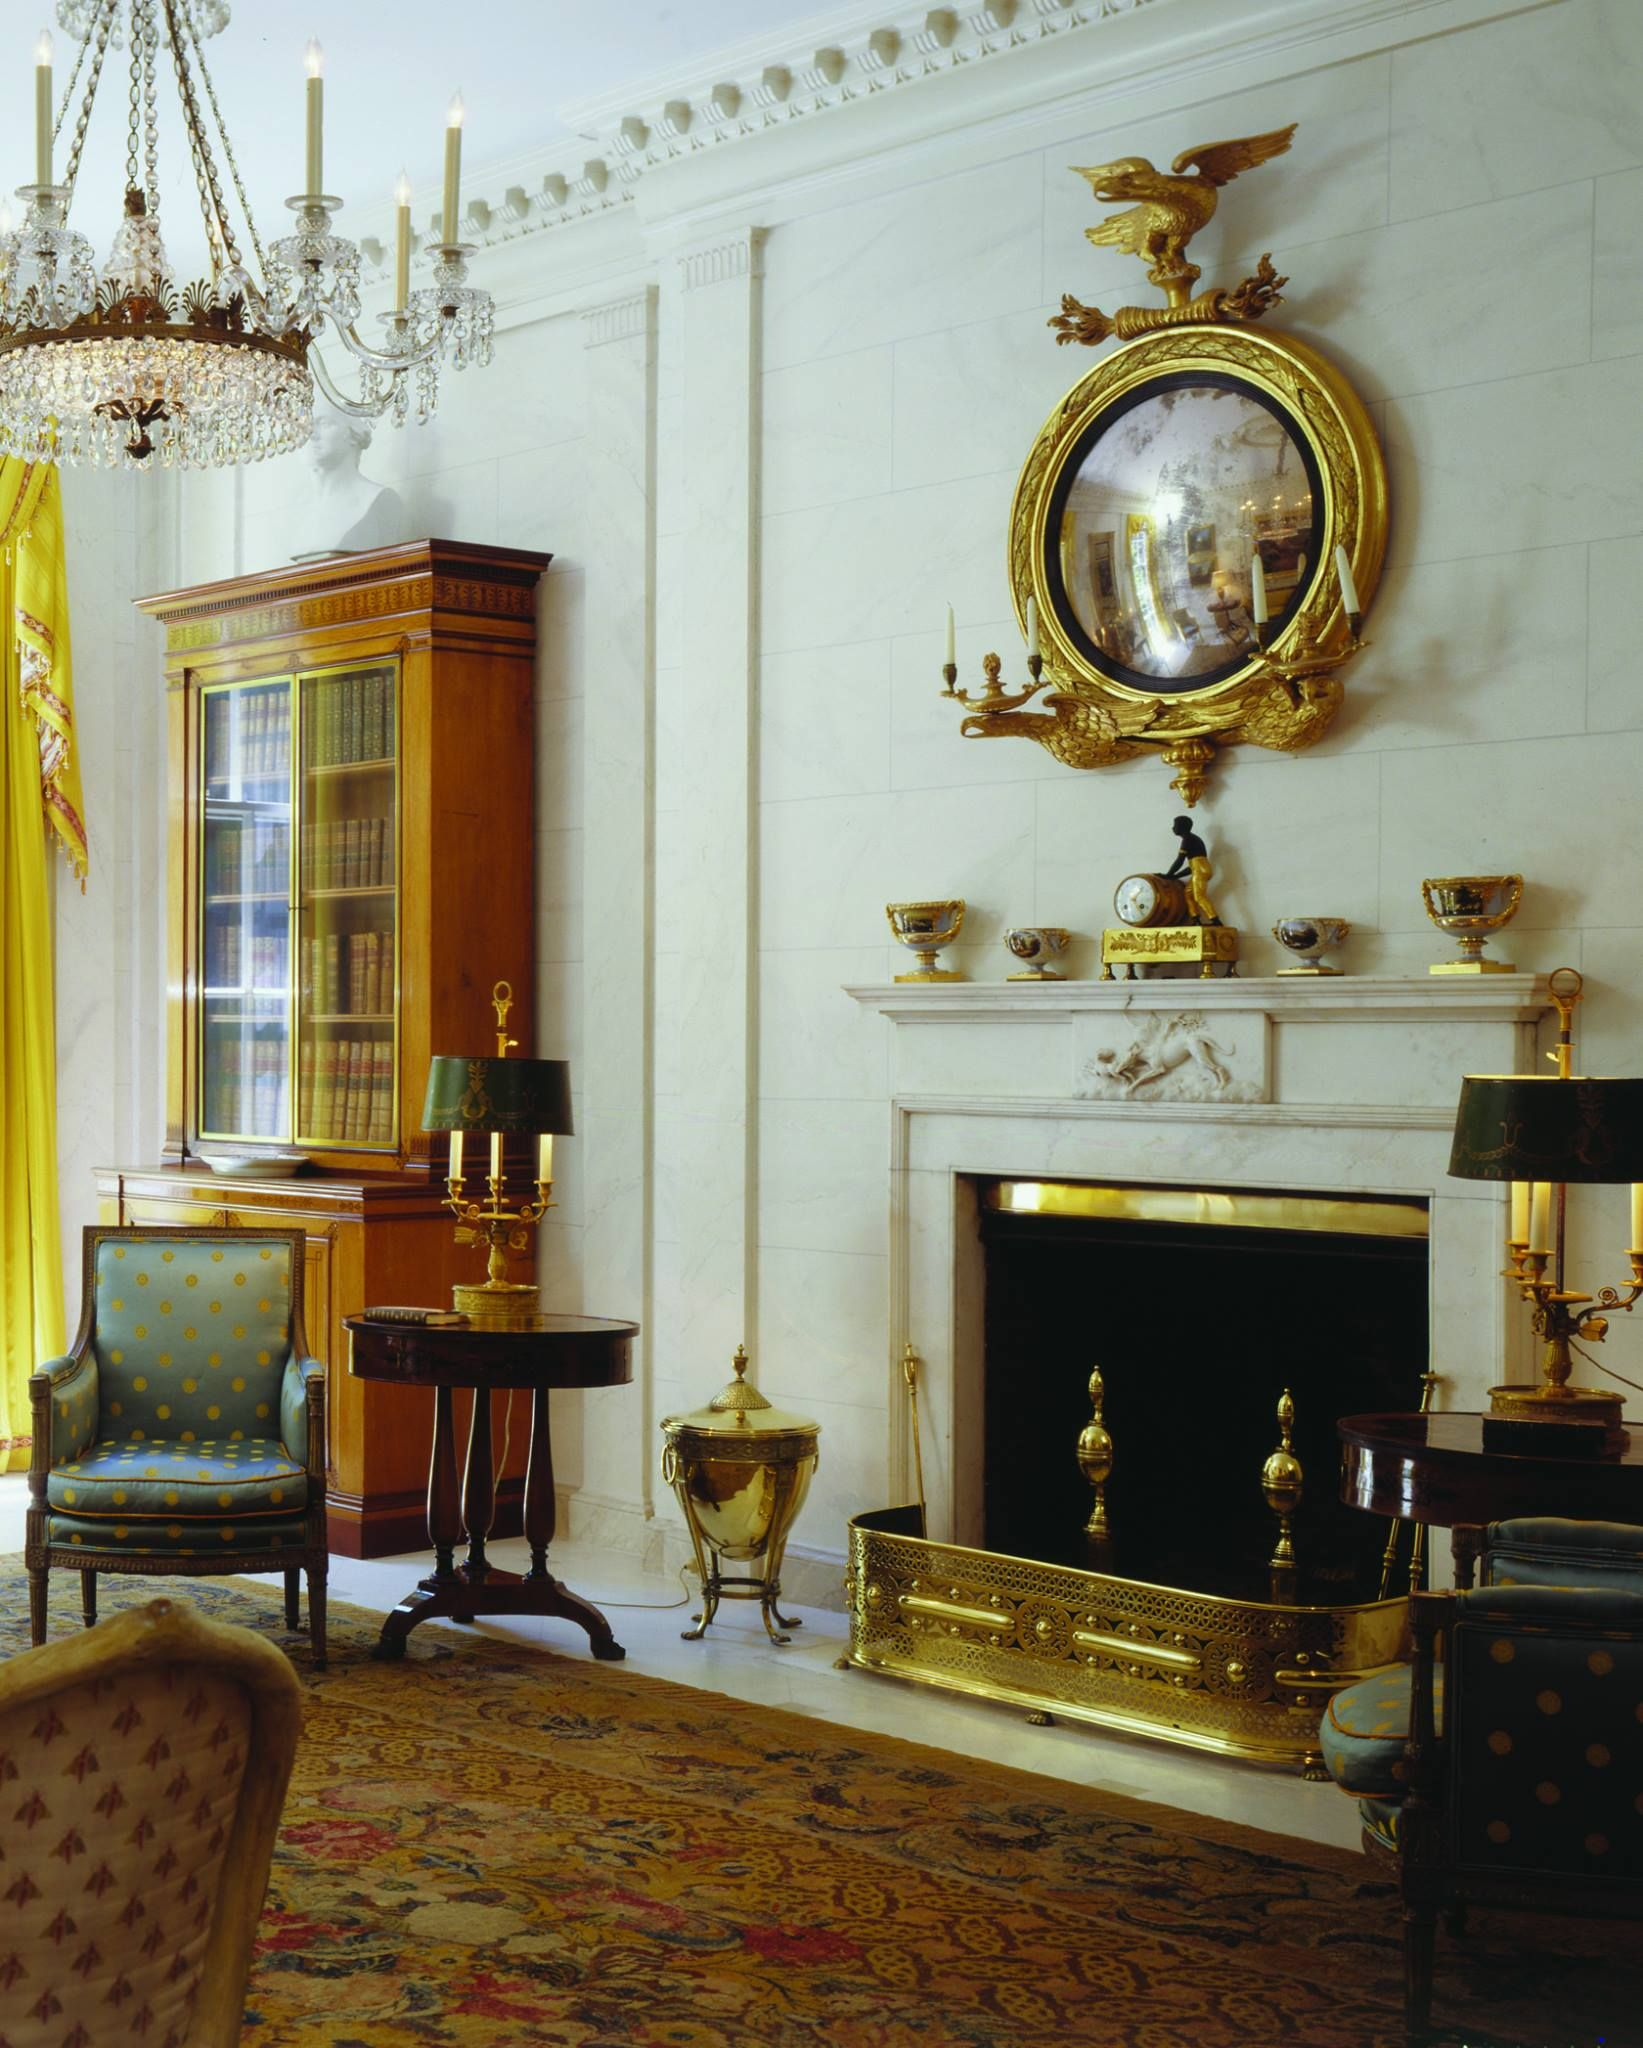 Classic american home interior drawing room in white george f baker house park avenue u rd